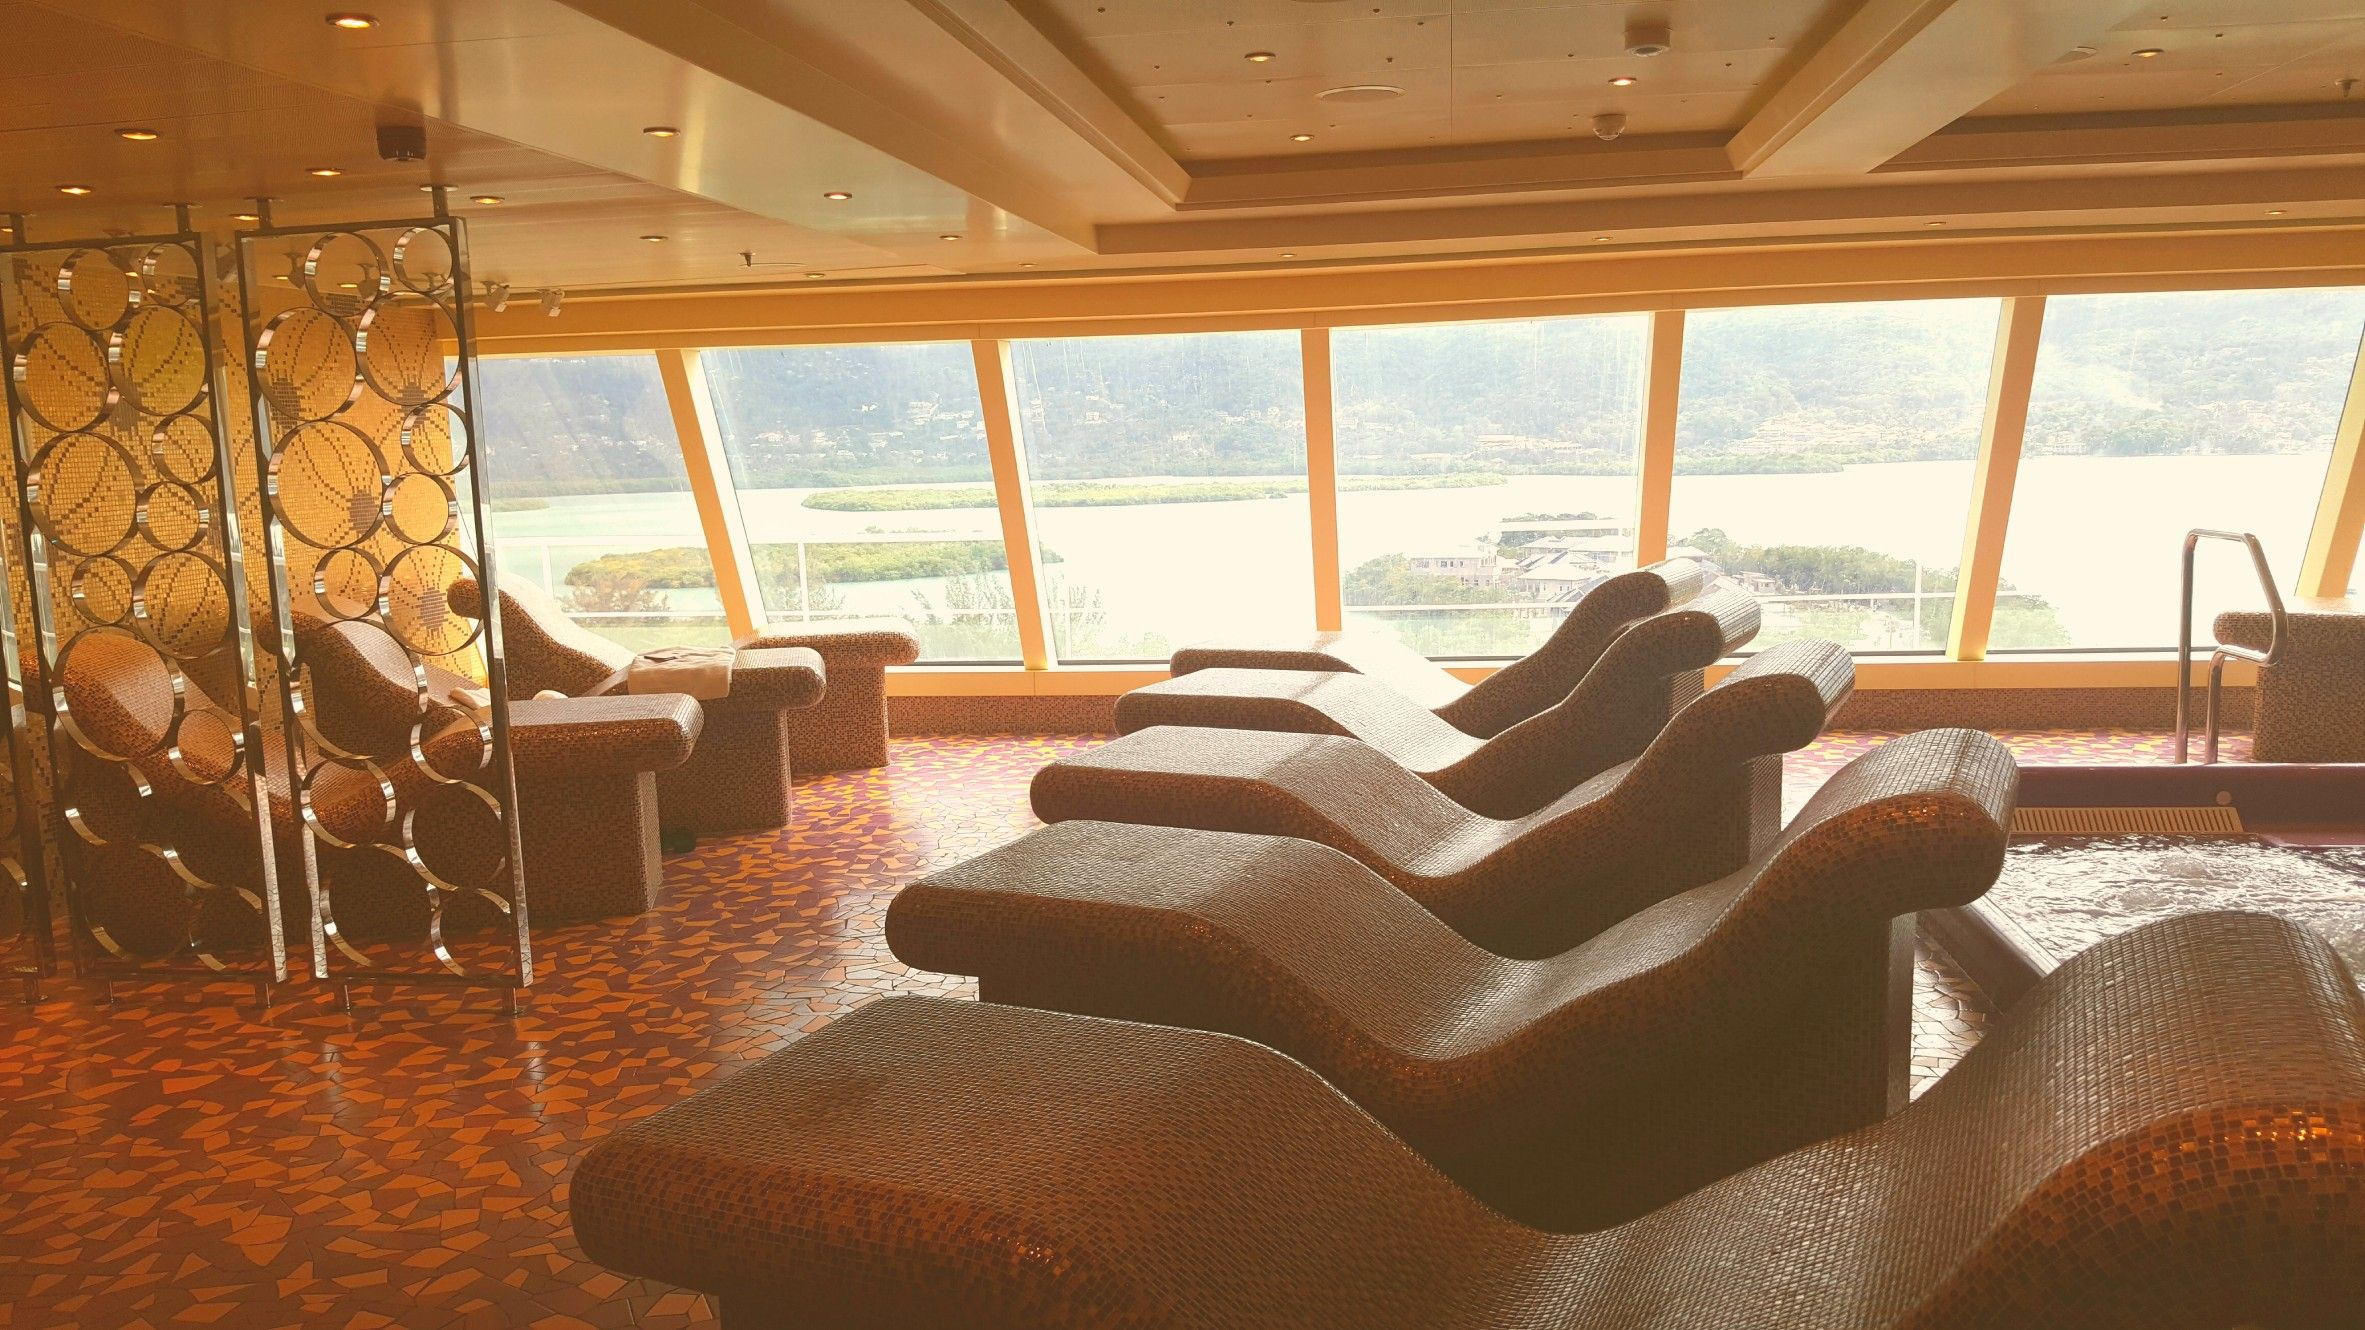 Carnival Vista Cloud 9 Spa: Thermal Suites 😍 Take A Tour